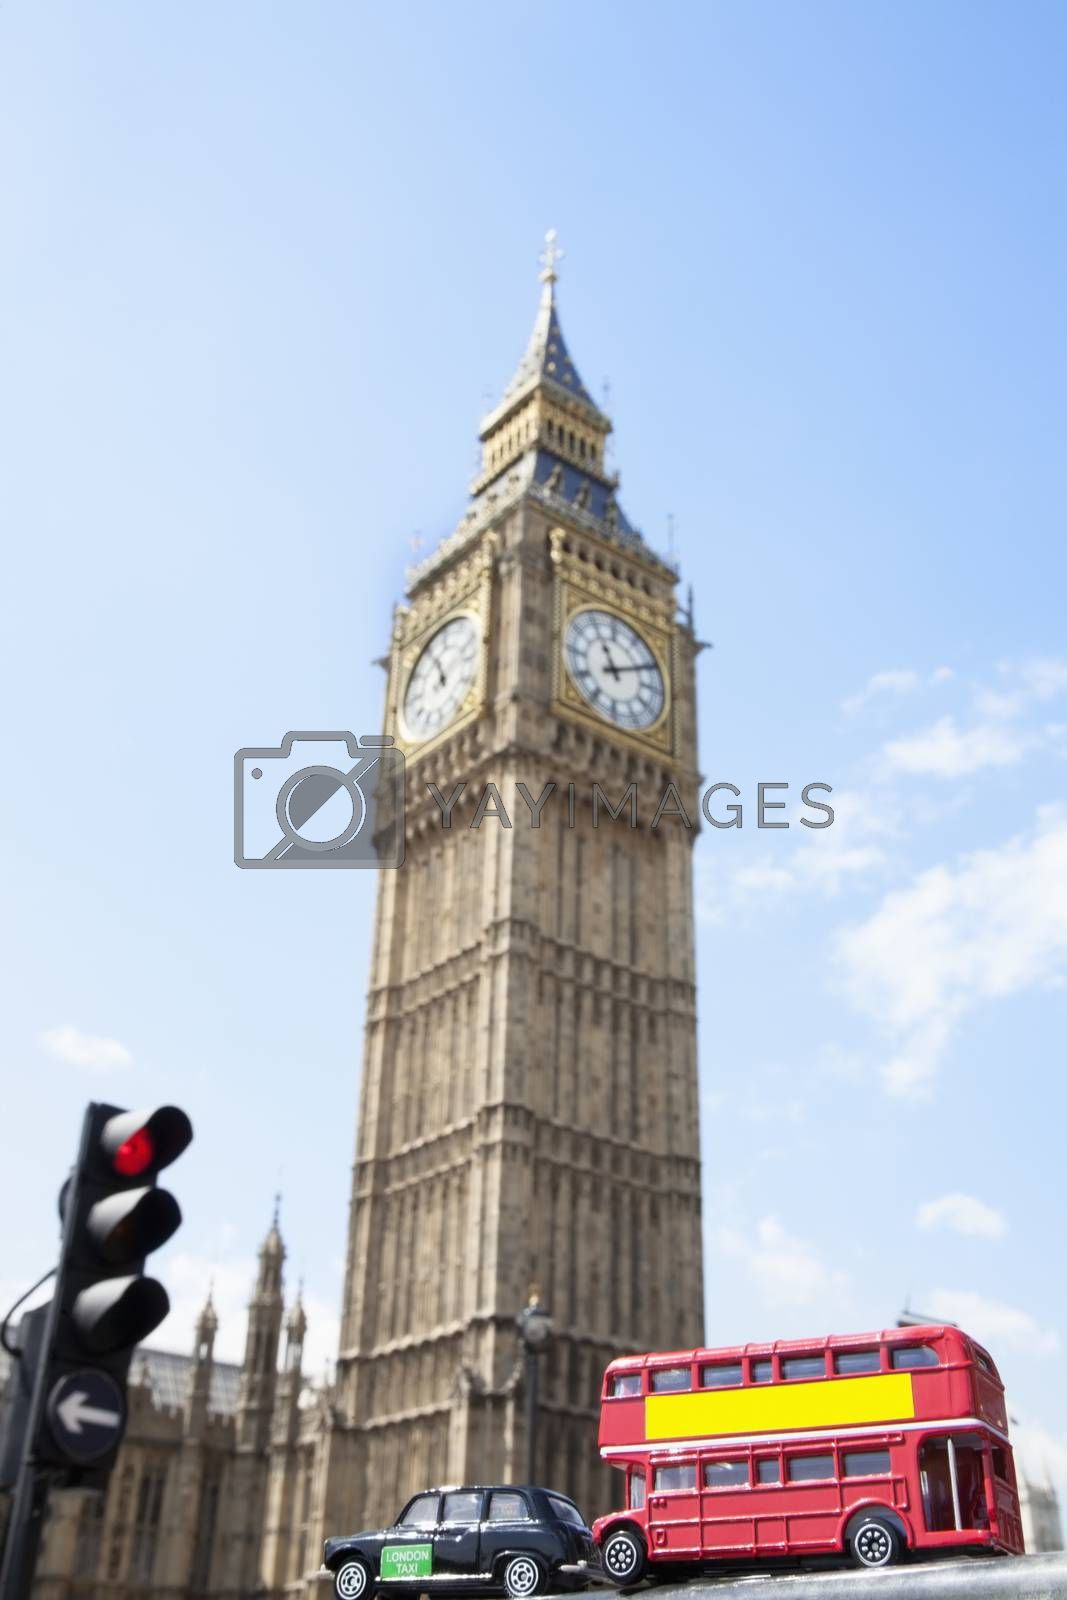 Public transport figurines with Big Ben Tower in the background by moodboard